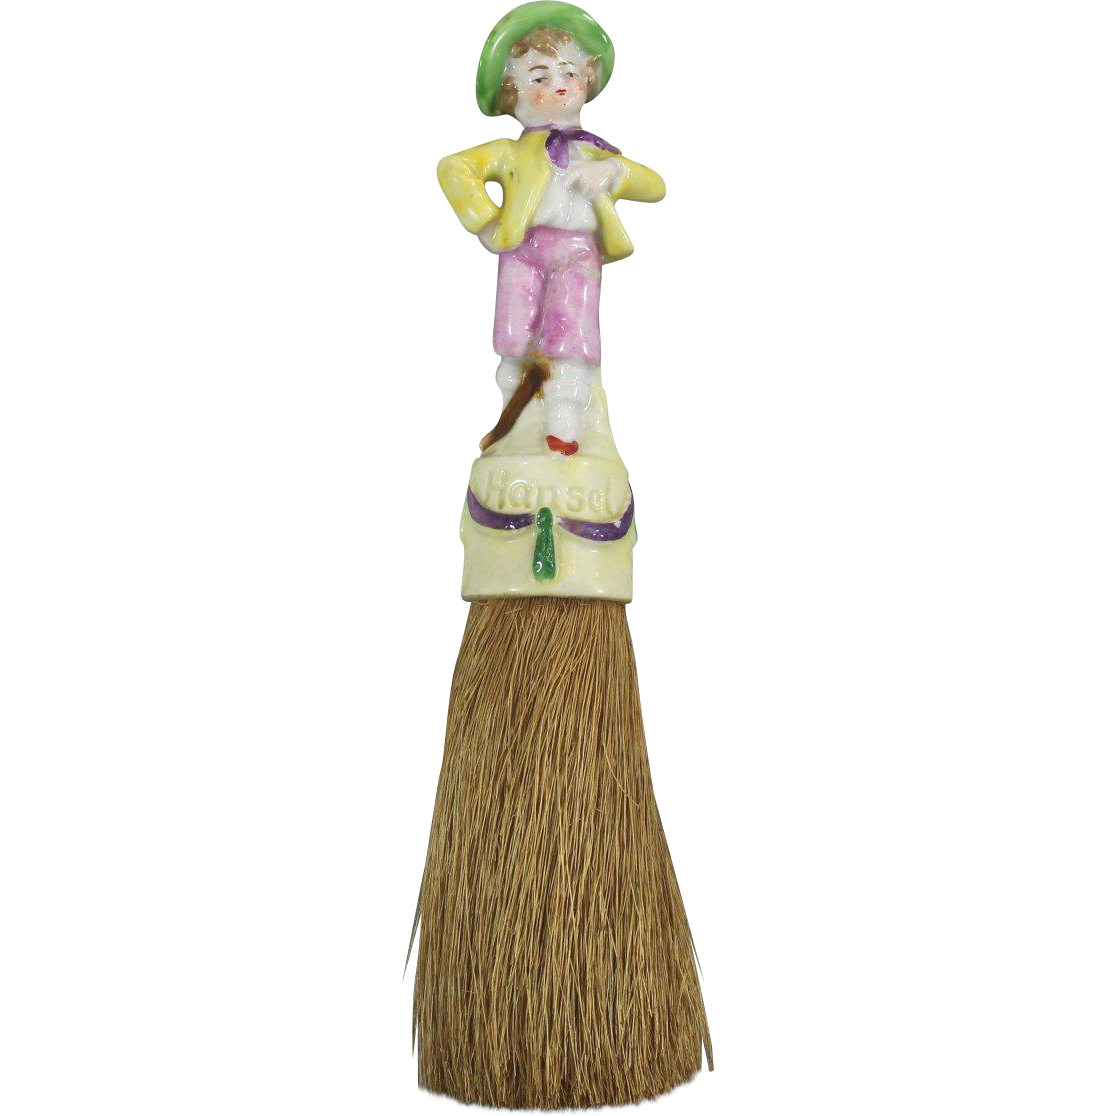 German Hansel Clothes Brush for Vanity